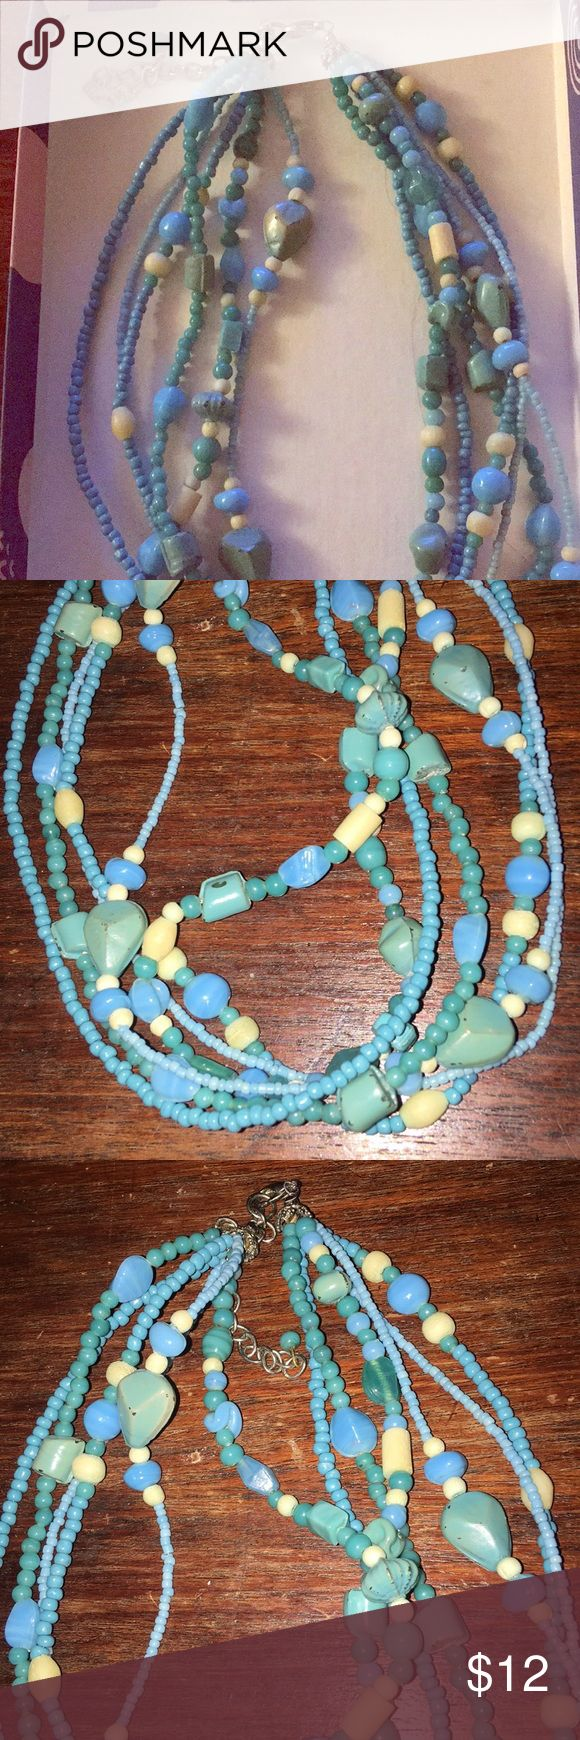 🛍2 for $20🛍 Blue and White Multistrand Necklace This listing is for one light blue and white beaded multi strand necklace. It has only been worn a few times and is like new. Reasonable offers will be considered! **BUNDLE WITH ANY 2 FOR $20 LISTING AND I WILL SEND AN OFFER WITH FHE DISCOUNTED PRICE** Jewelry Necklaces